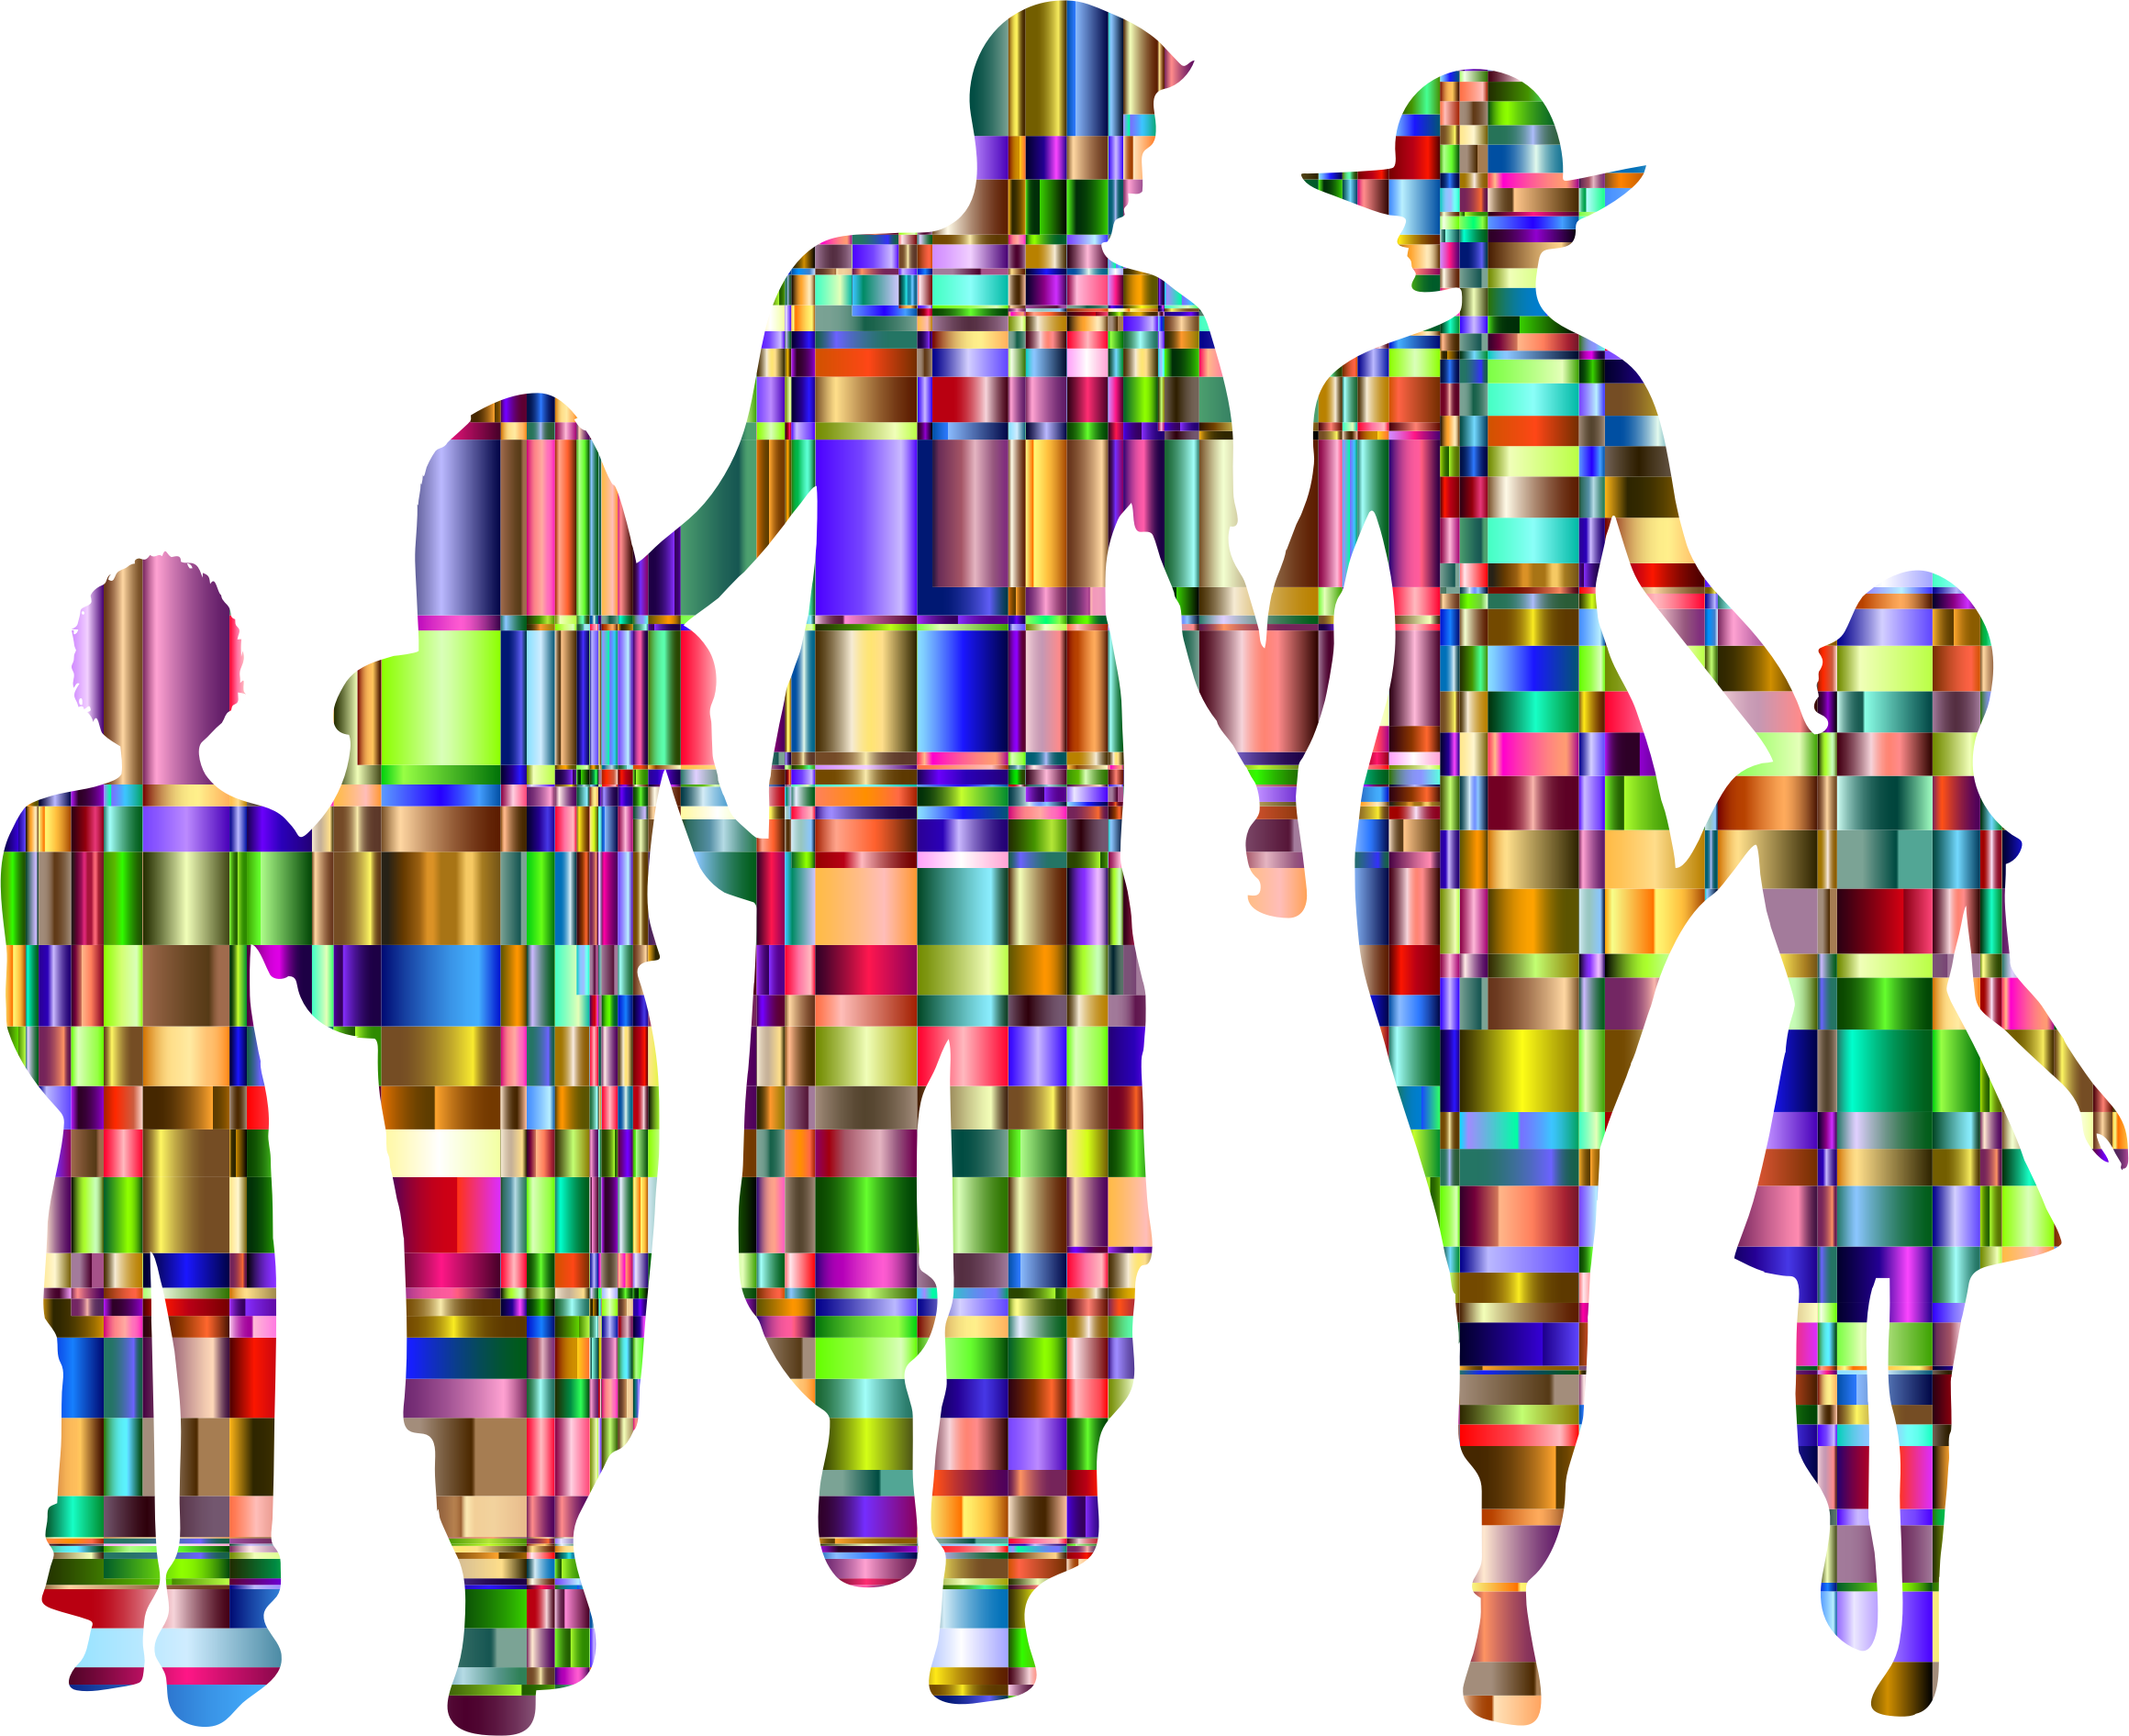 Checkered Chromatic Family by GDJ